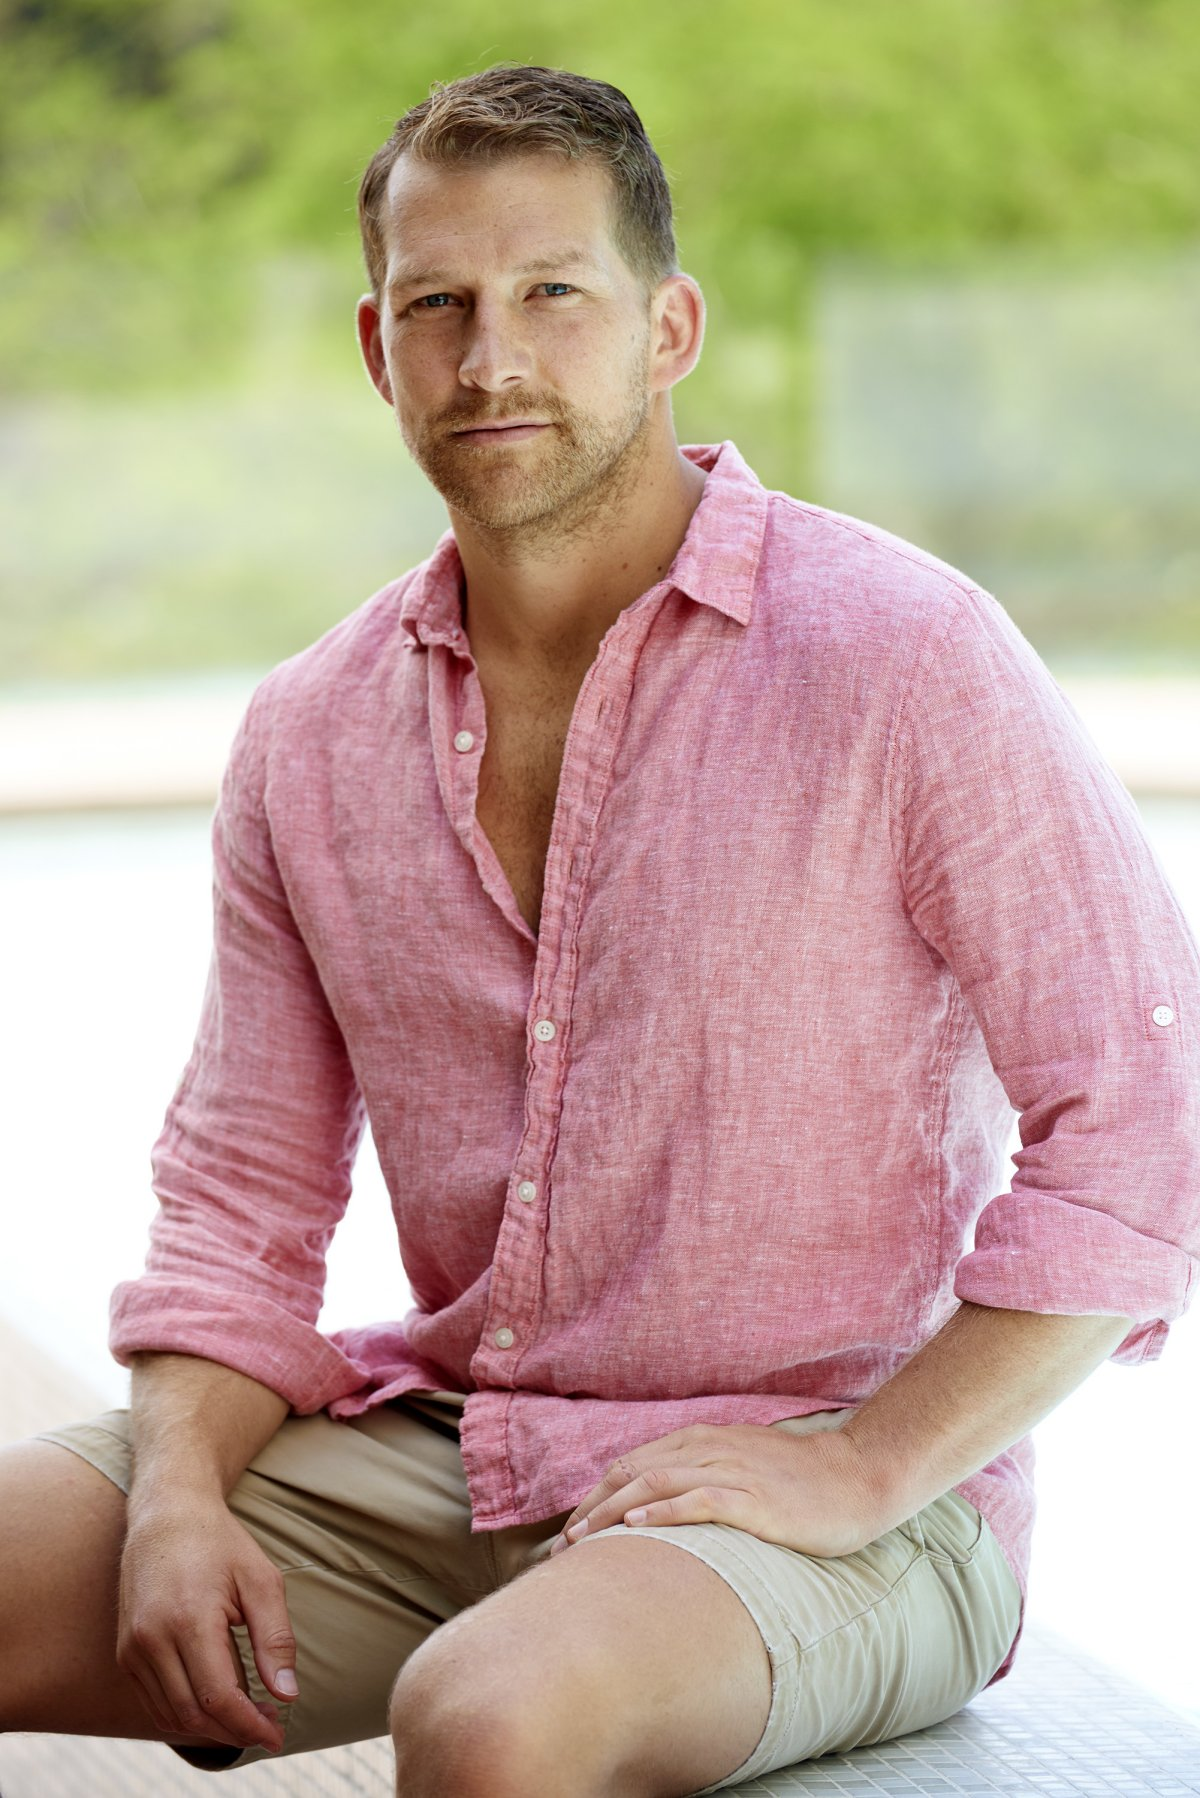 Nick Benvenutti Bachelor in Paradise, Contestant, Wiki, Bio, Age, Profile, Images, Girlfriend | Full Details